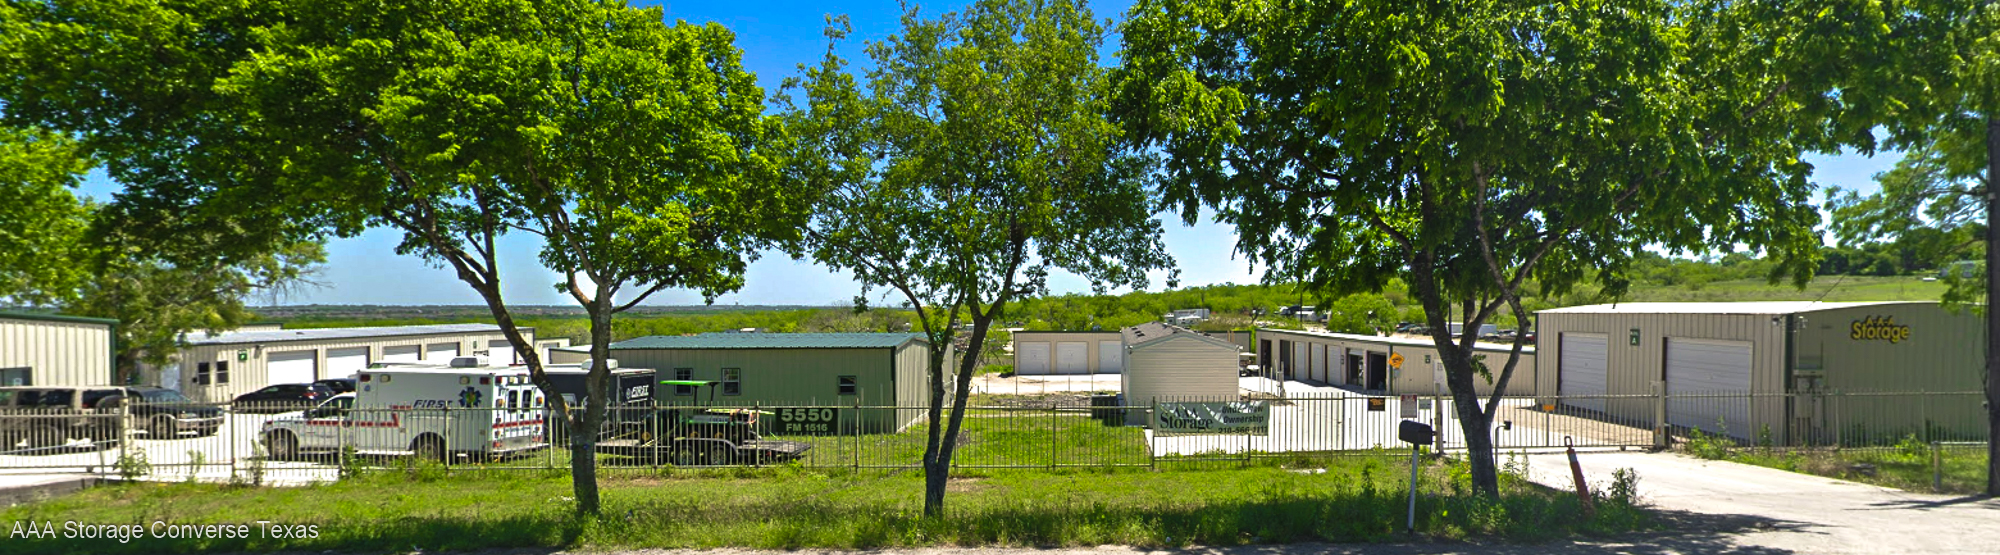 AAA Storage business park and Self Storage on FM-1516